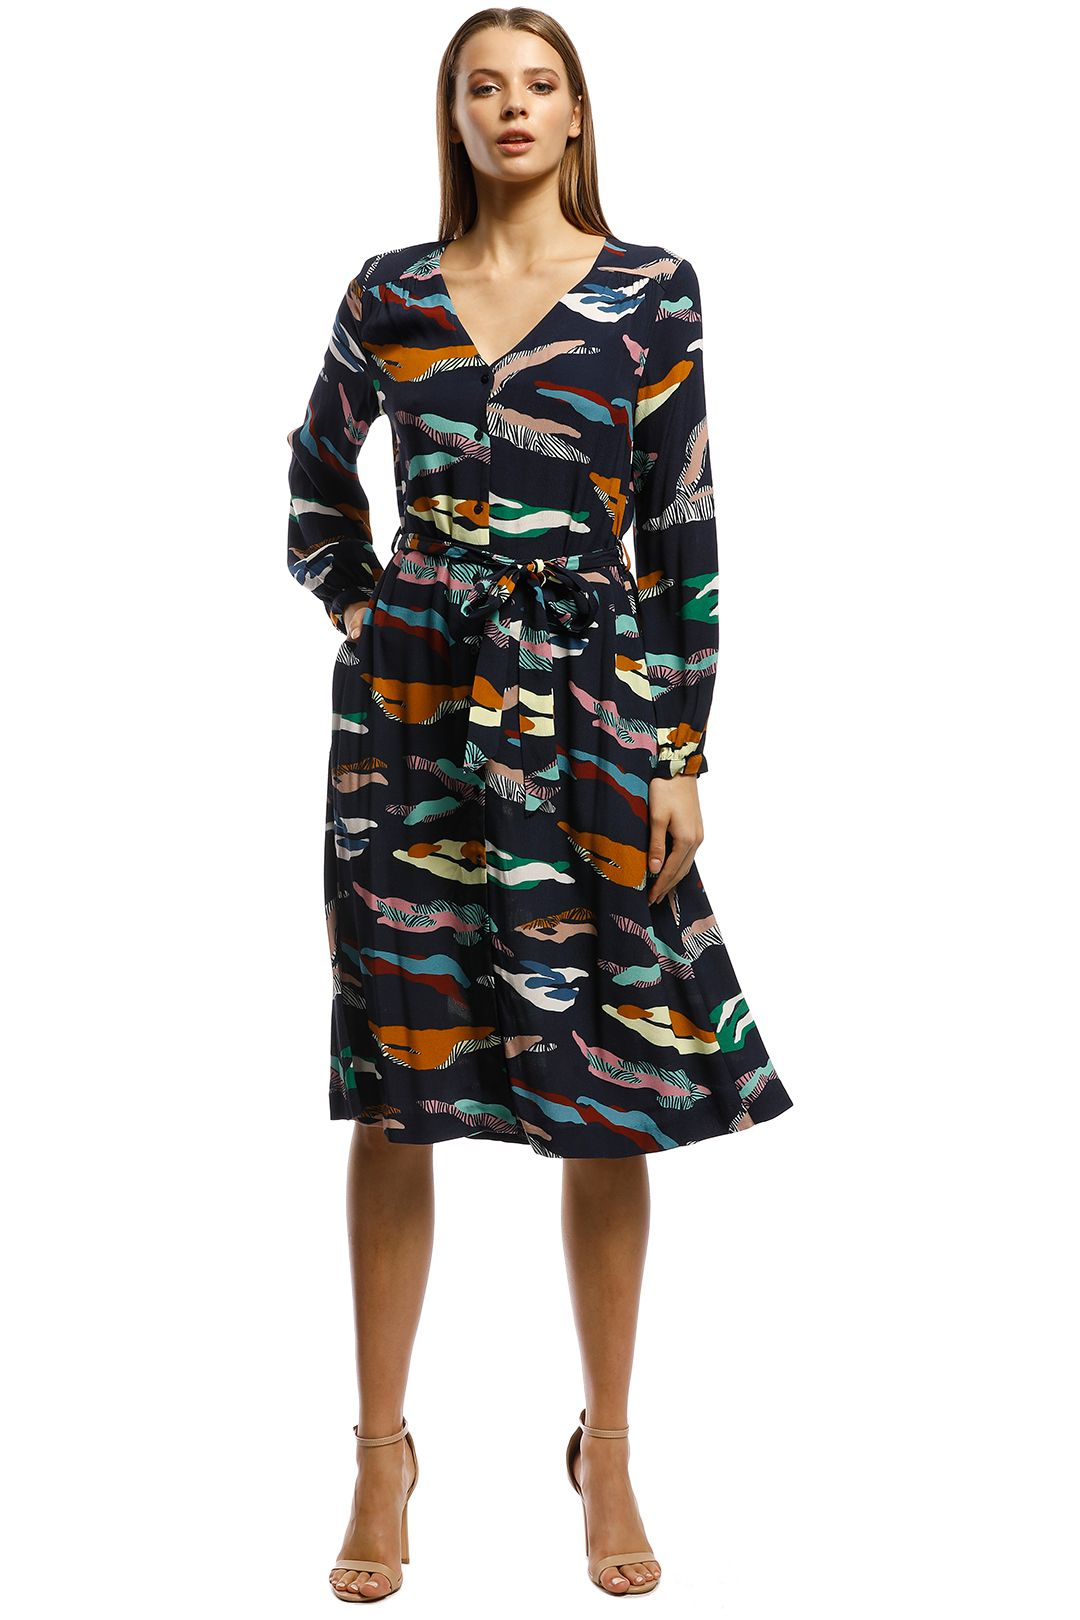 Gorman - Tora Dress - Blue print - Front